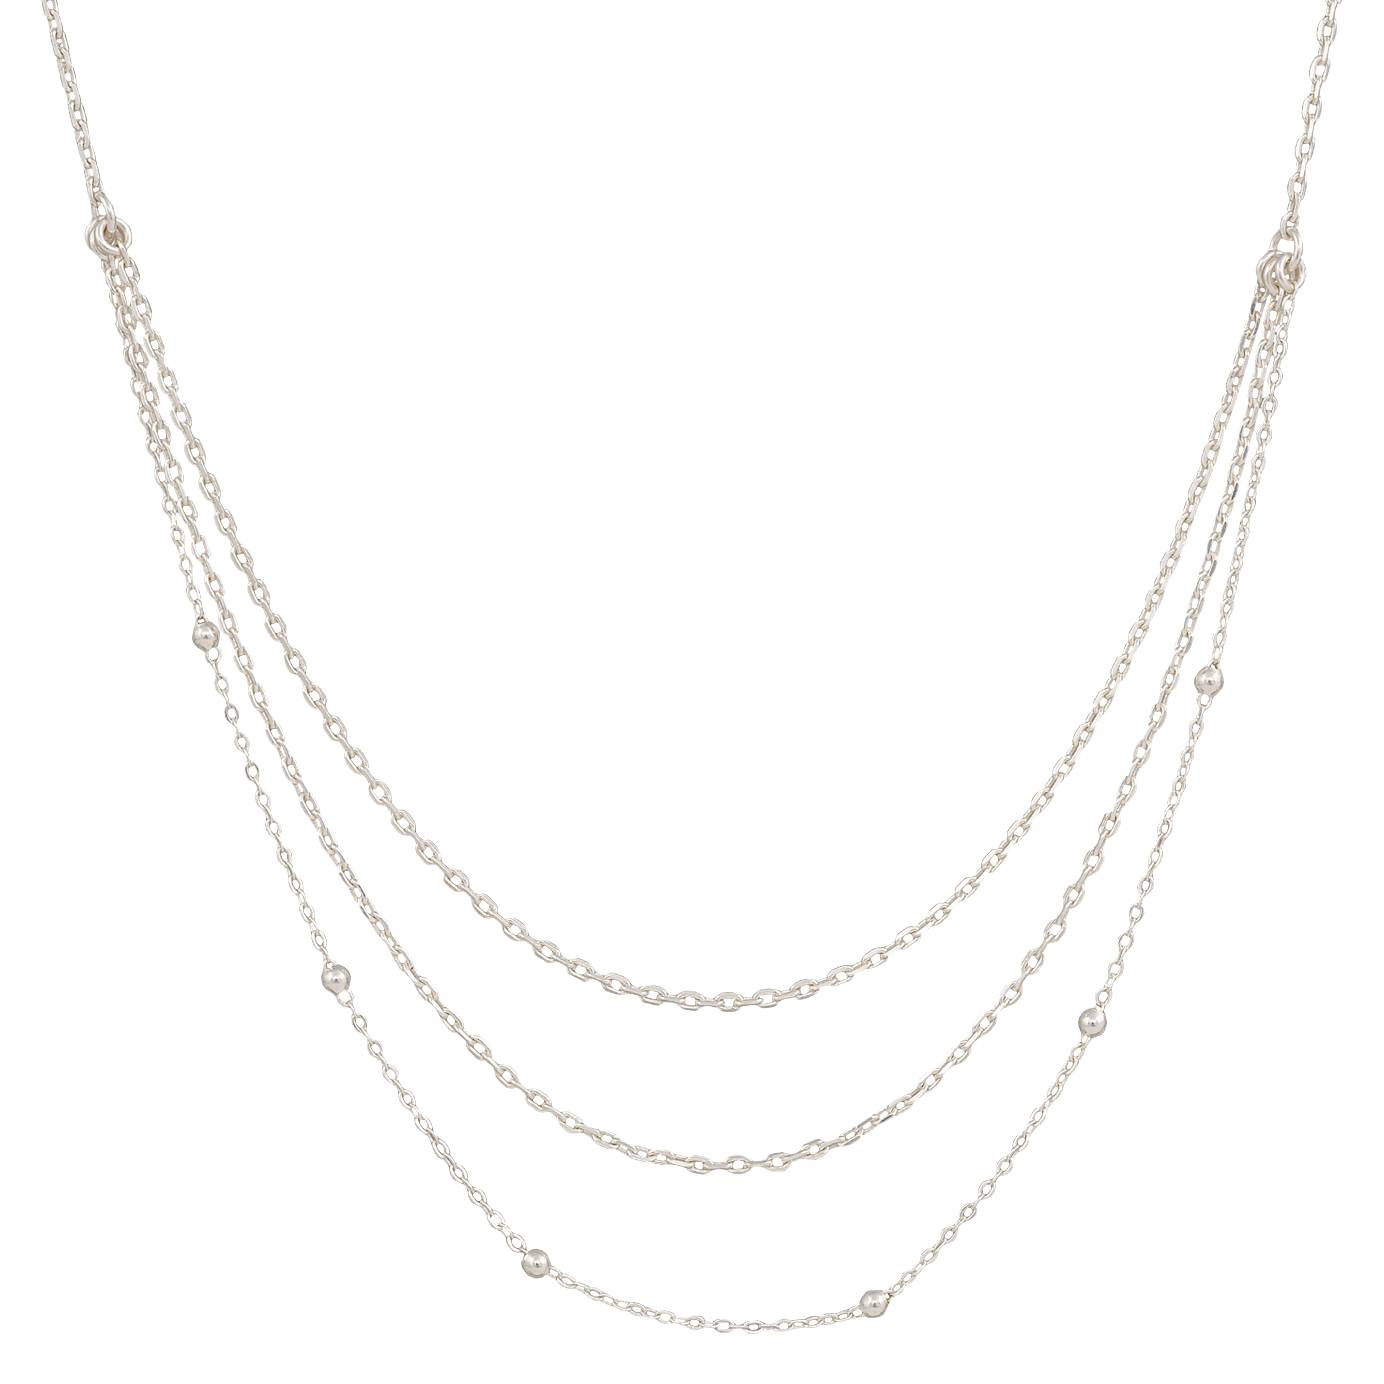 Montana Silversmiths Ripple Effect Triple Strand Necklace